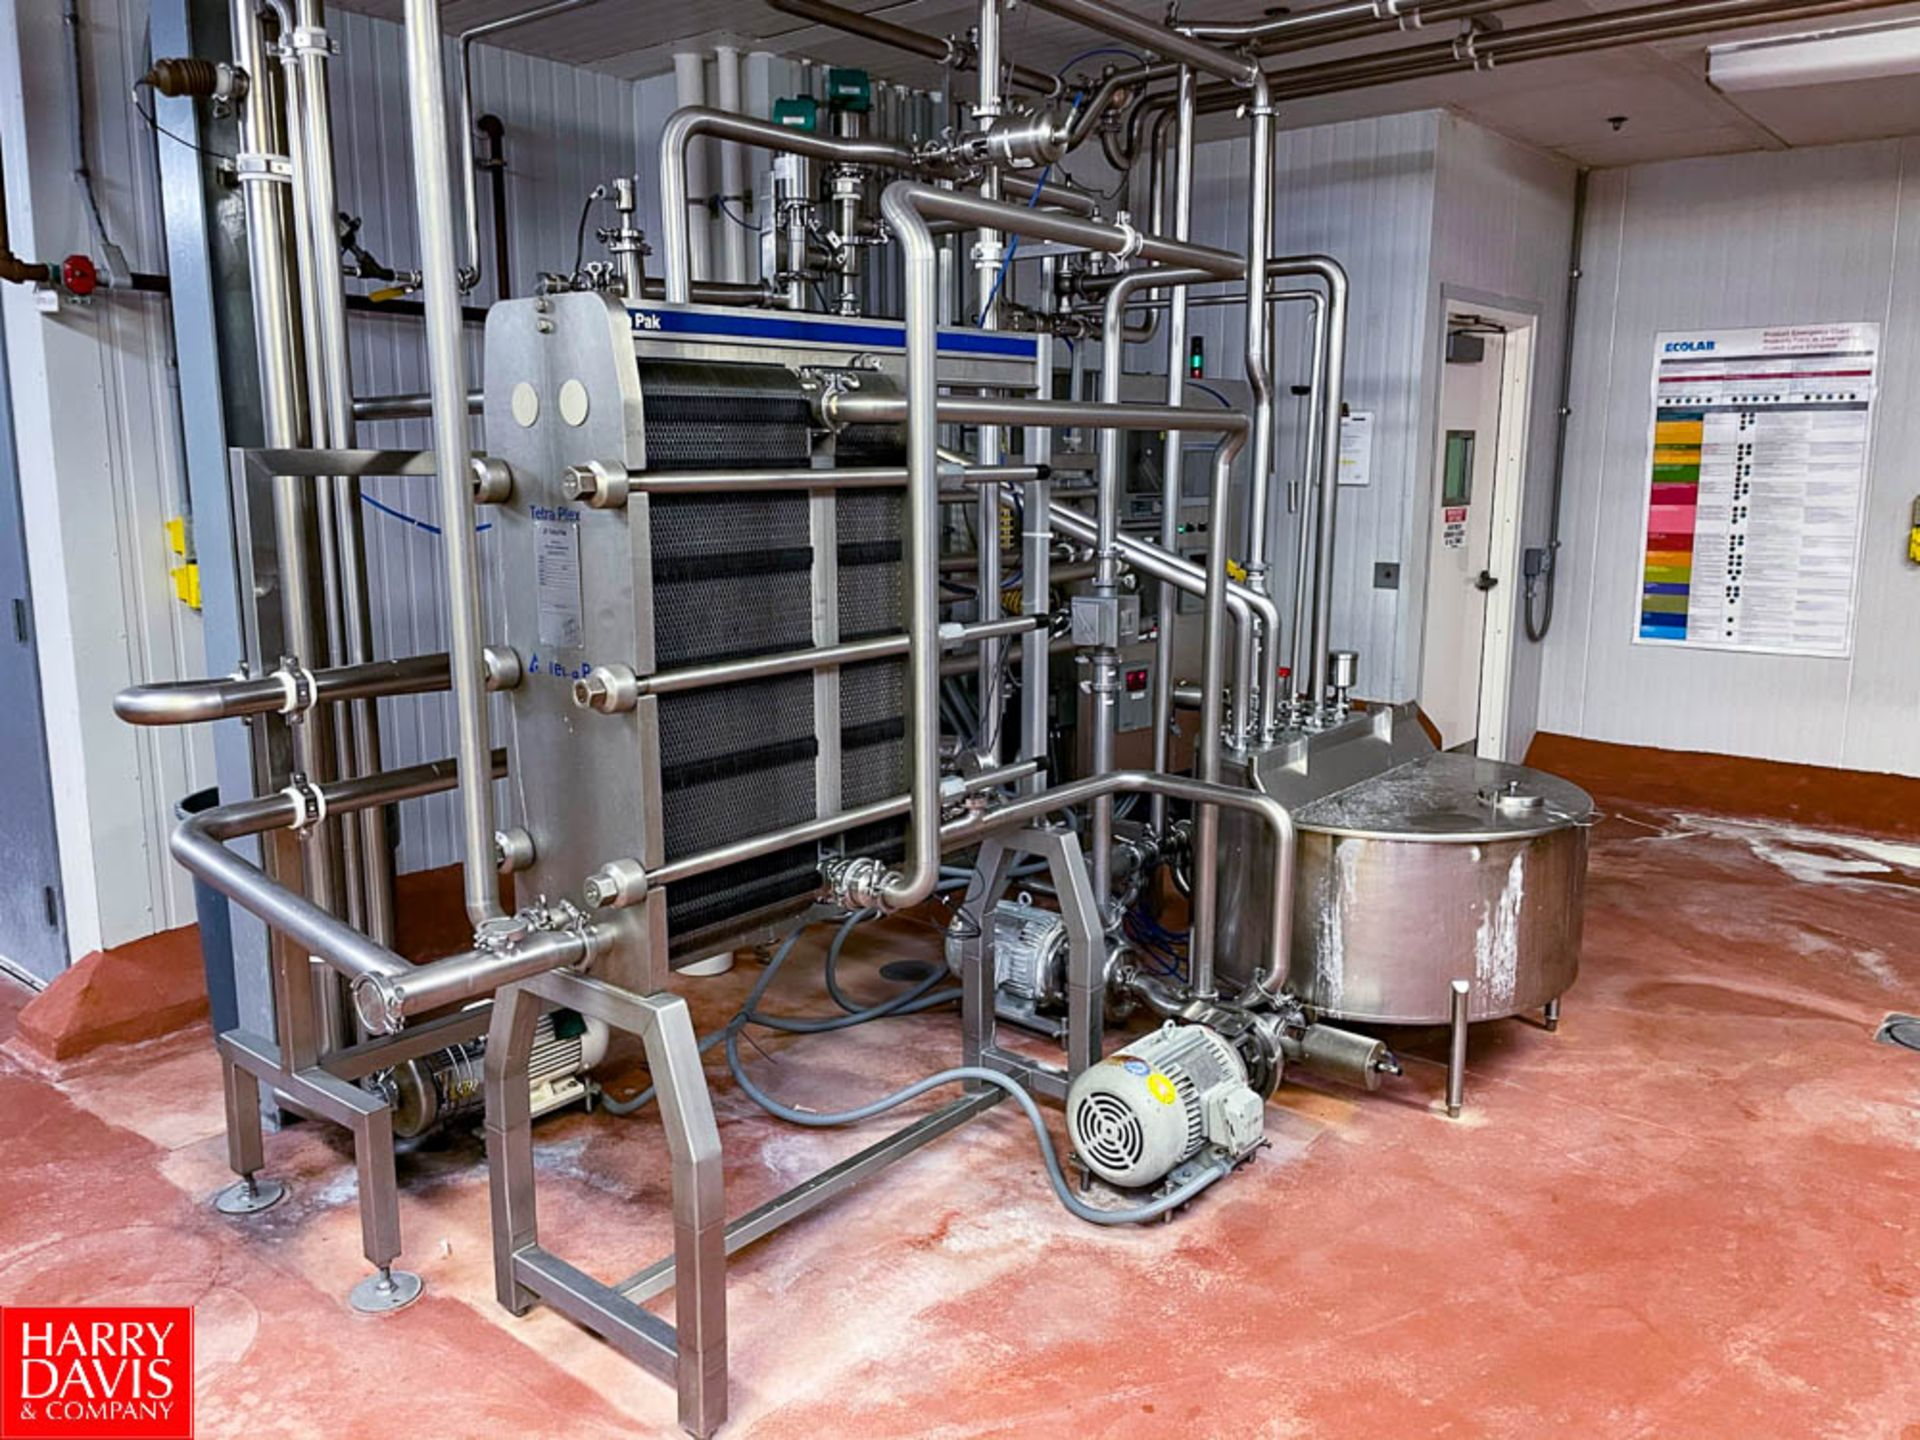 2008 Tetra Pak 36 GPM Pasteurizer Including Tetra Pak 3-Zone S/S Frame Plate Heat Exchanger, S/S - Image 5 of 6